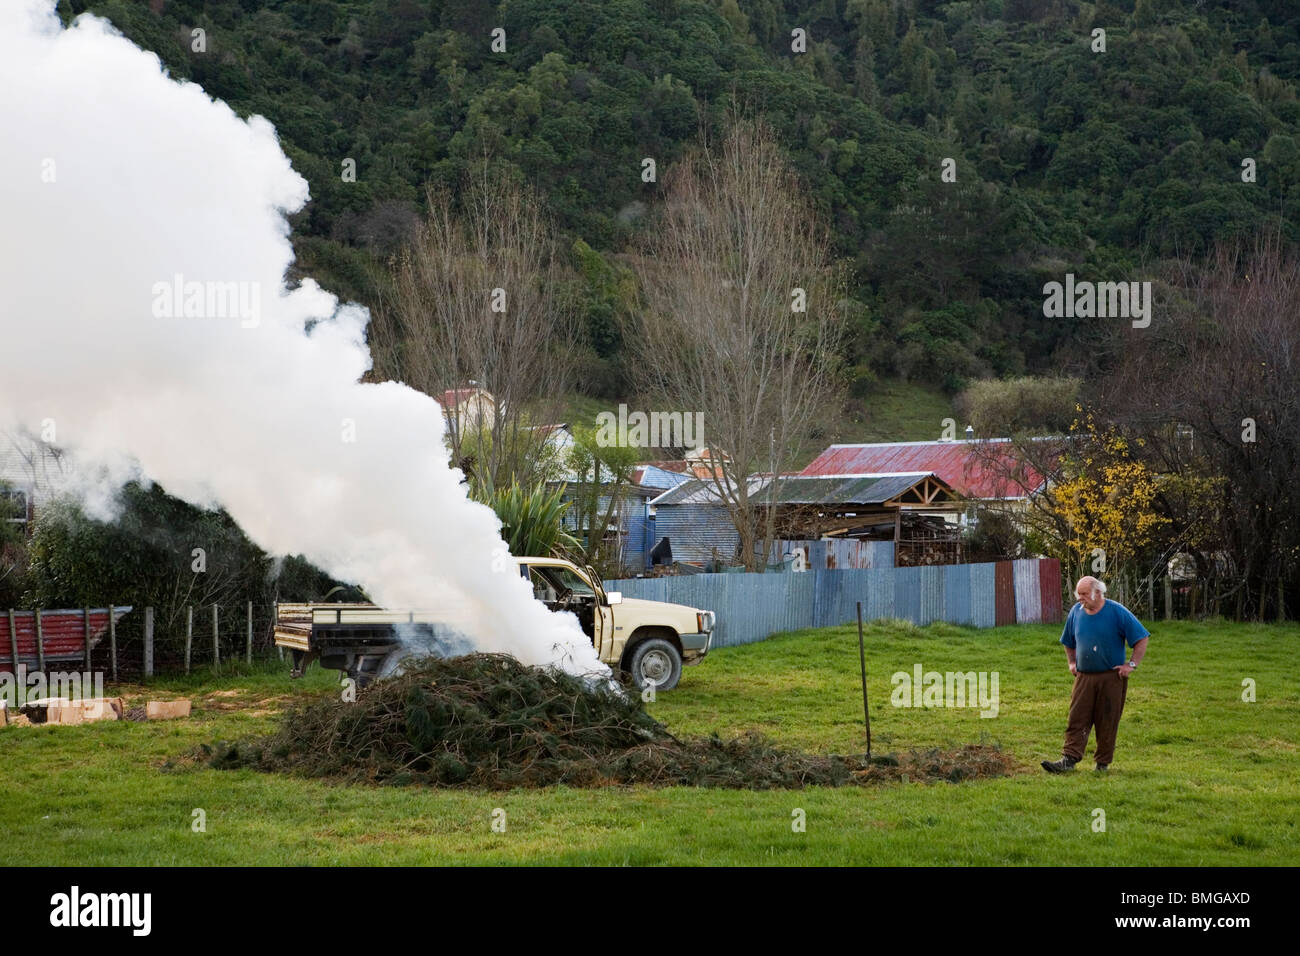 An old man burning leaves and producing a white cloud of smoke in a farm, New Zealand Stock Photo